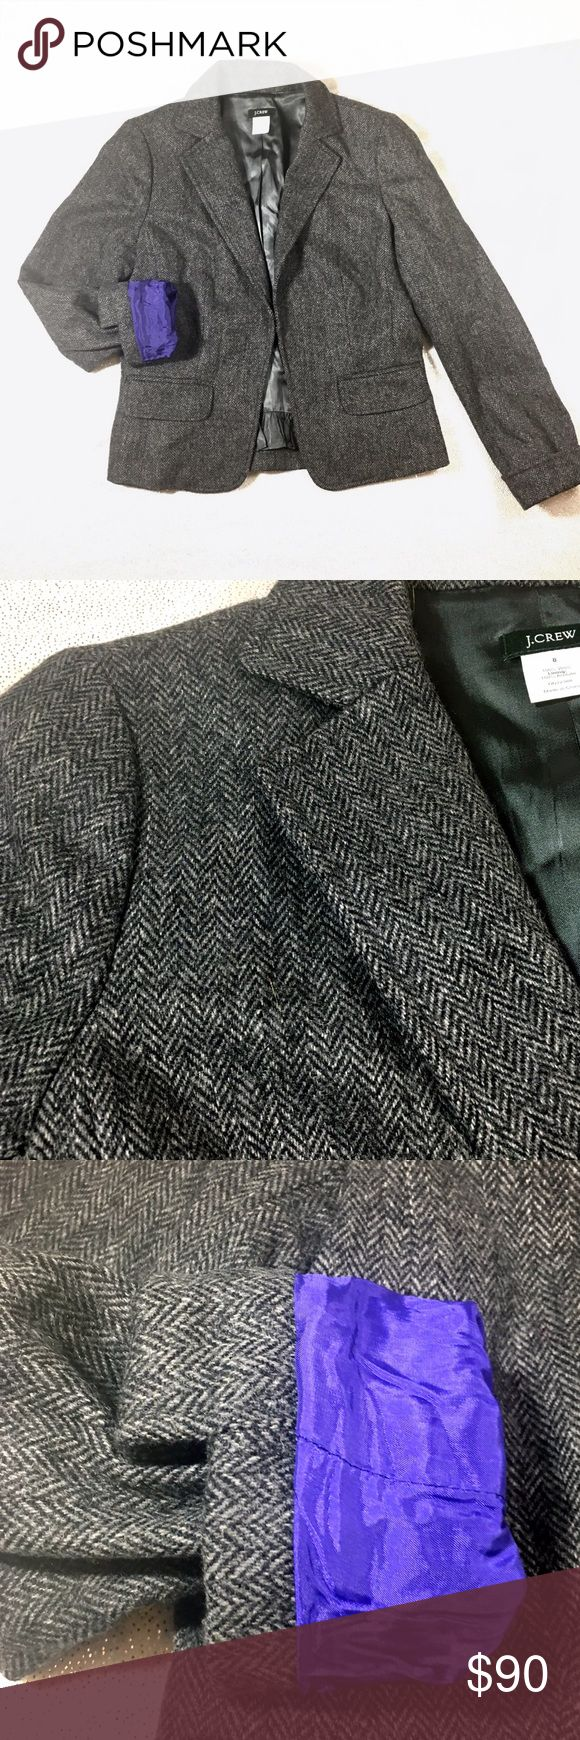 J.Crew Ecole Herringbone Wool Jacket We all love a little flash and sparkle, but at the end of the day-what's most important is 🌮 tacos. Next most important: wardrobe staples that never, ever get dated, out of style and go with everything. J. Crew is like: Hold my drink...This classic J.Crew Ecole jacket is 100% wool, fully lined. Inside lining is a gorgeous royal purple. Hidden front hook clasp to close J. Crew Jackets & Coats